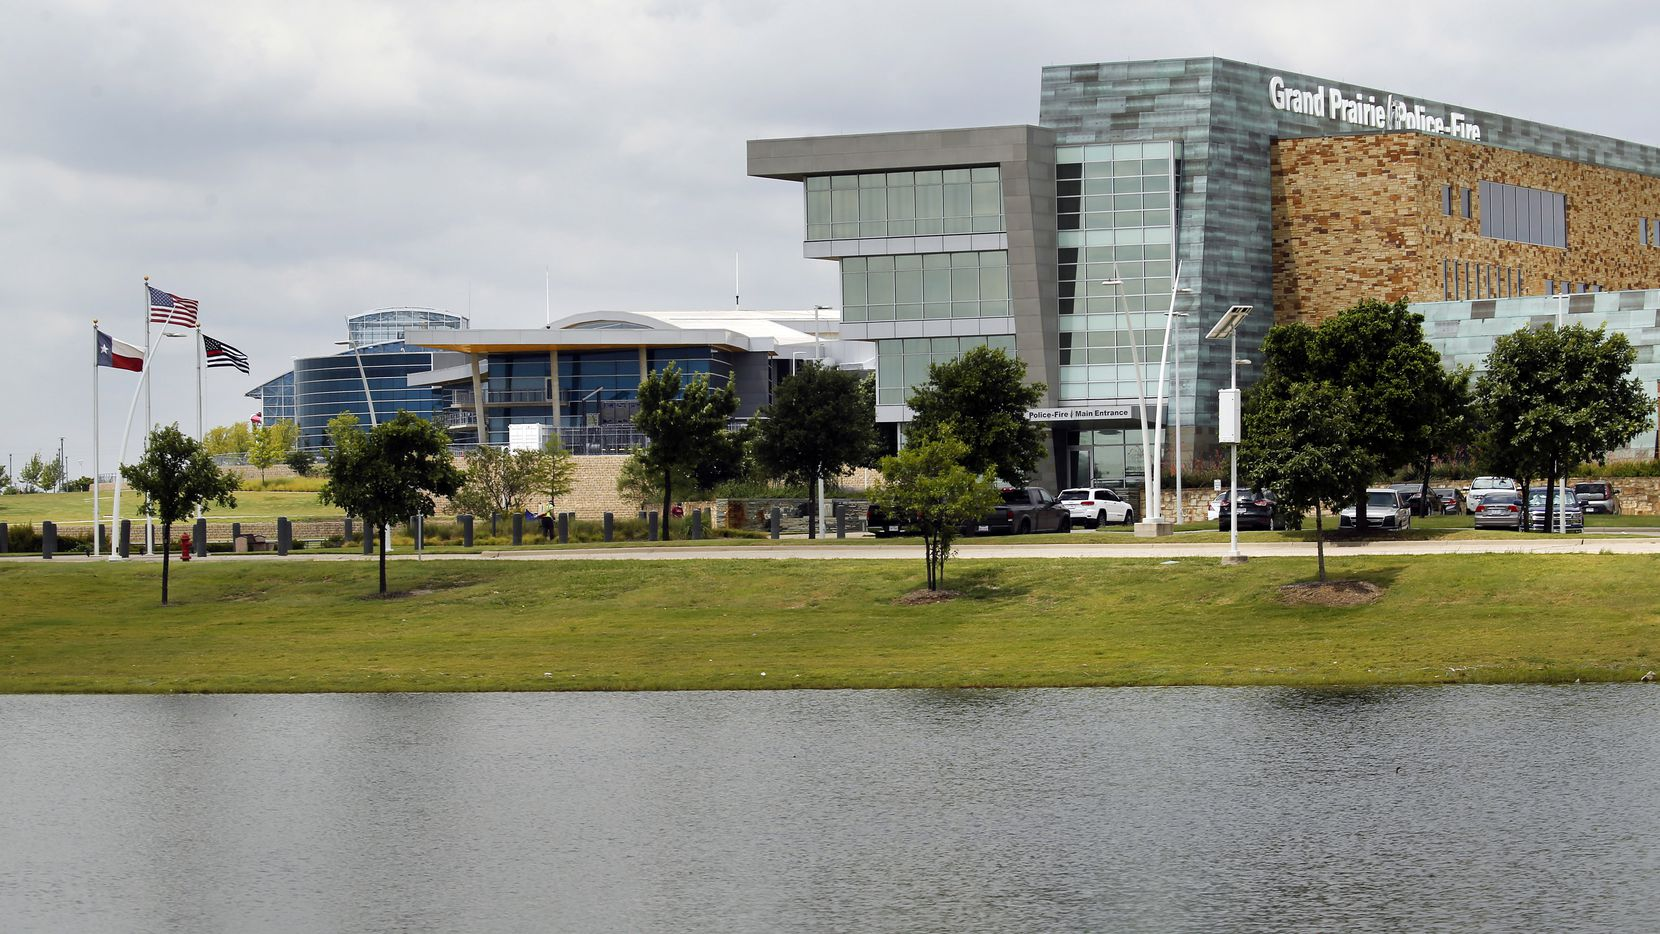 The Grand Prairie Police and Fire Departments administration building (right), The Epic (middle) and Epic Waters (left) are seen in the Epic Central park development along SH 161 in Grand Prairie, Texas, on June 25, 2020. Grand Prairie police will host a free party Saturday at Epic Lawn with live music, a petting zoo and a bicycle rodeo.